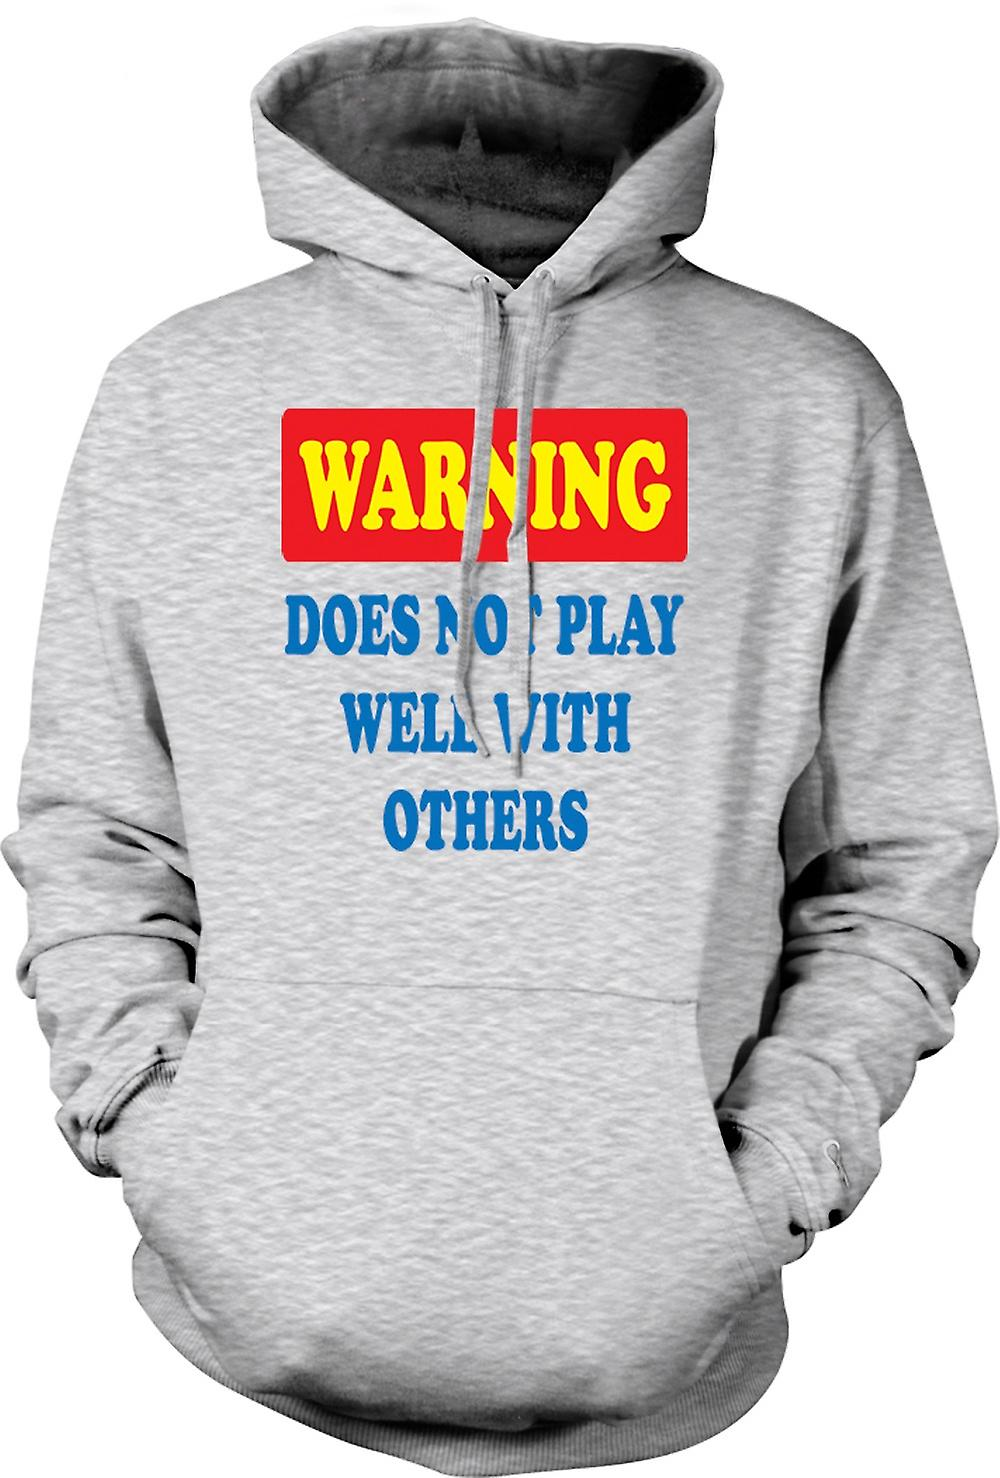 Mens Hoodie - Warning Does Not Play Well With Others